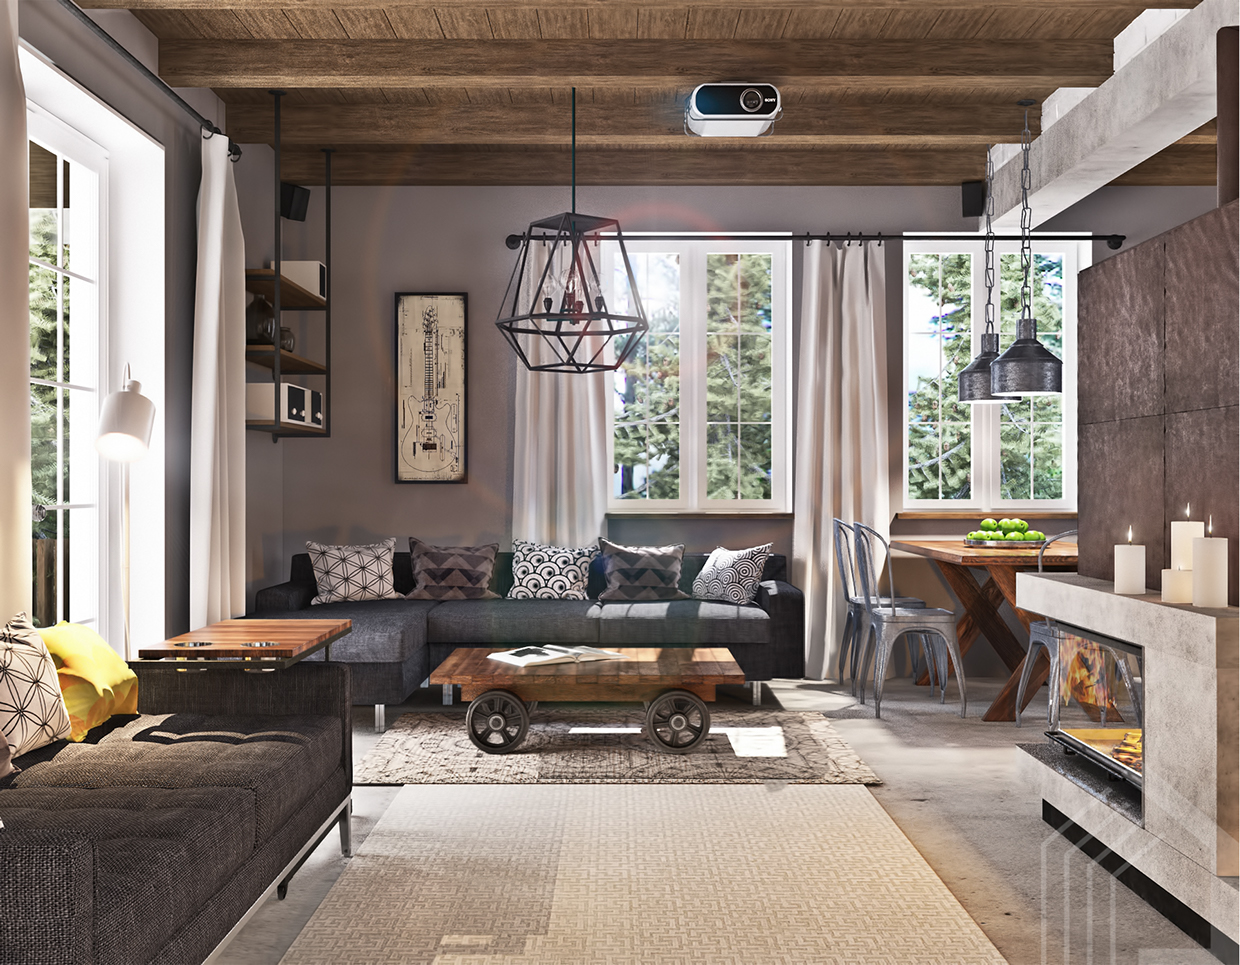 Studio Apartment Design With Industrial Decor Looks So